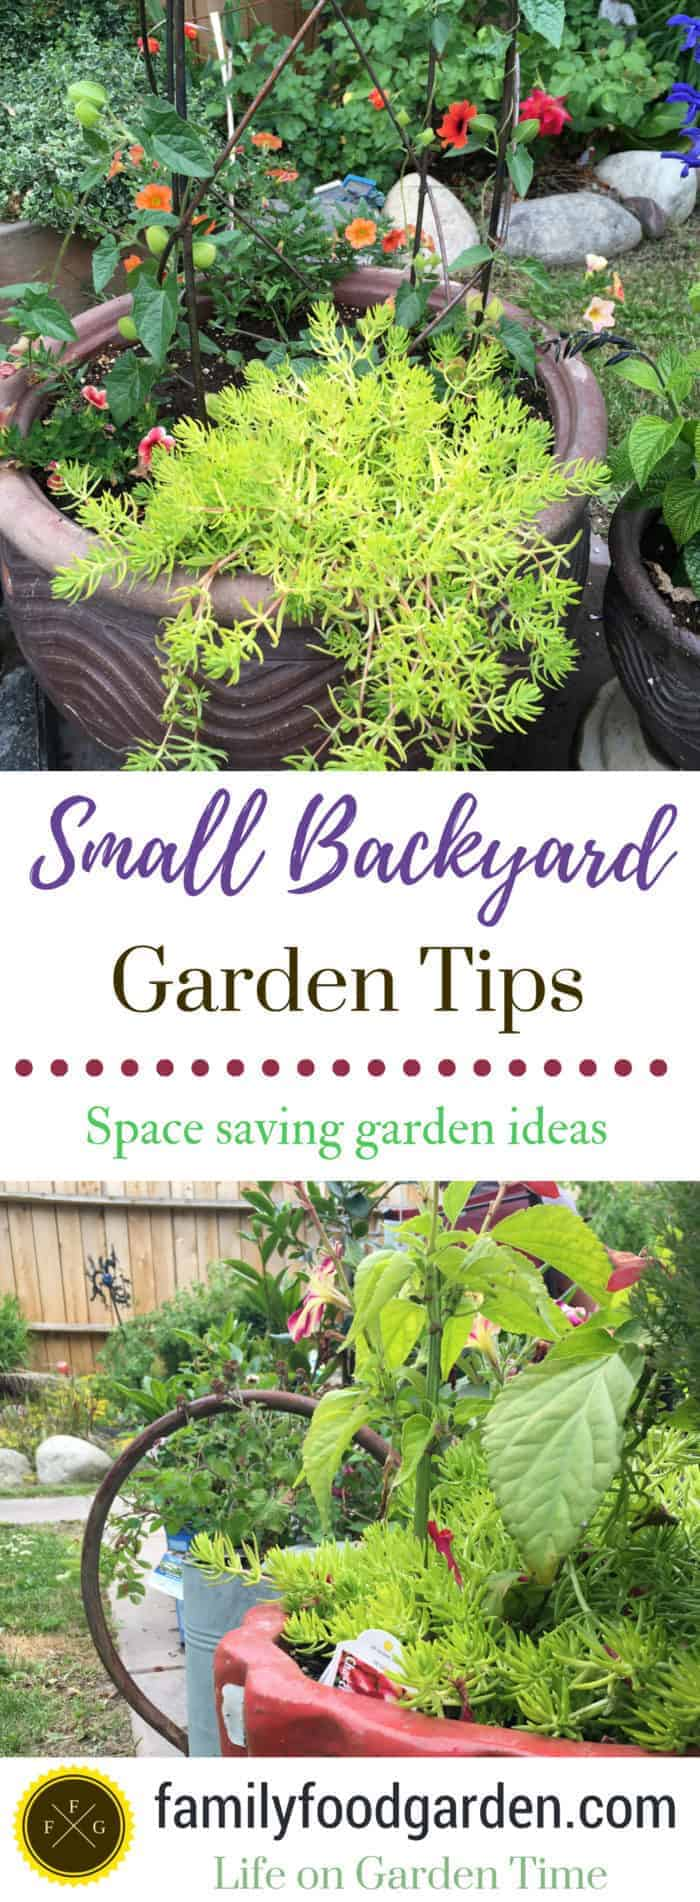 Backyard Gardening Ideas What are your best small backyard growing tips?